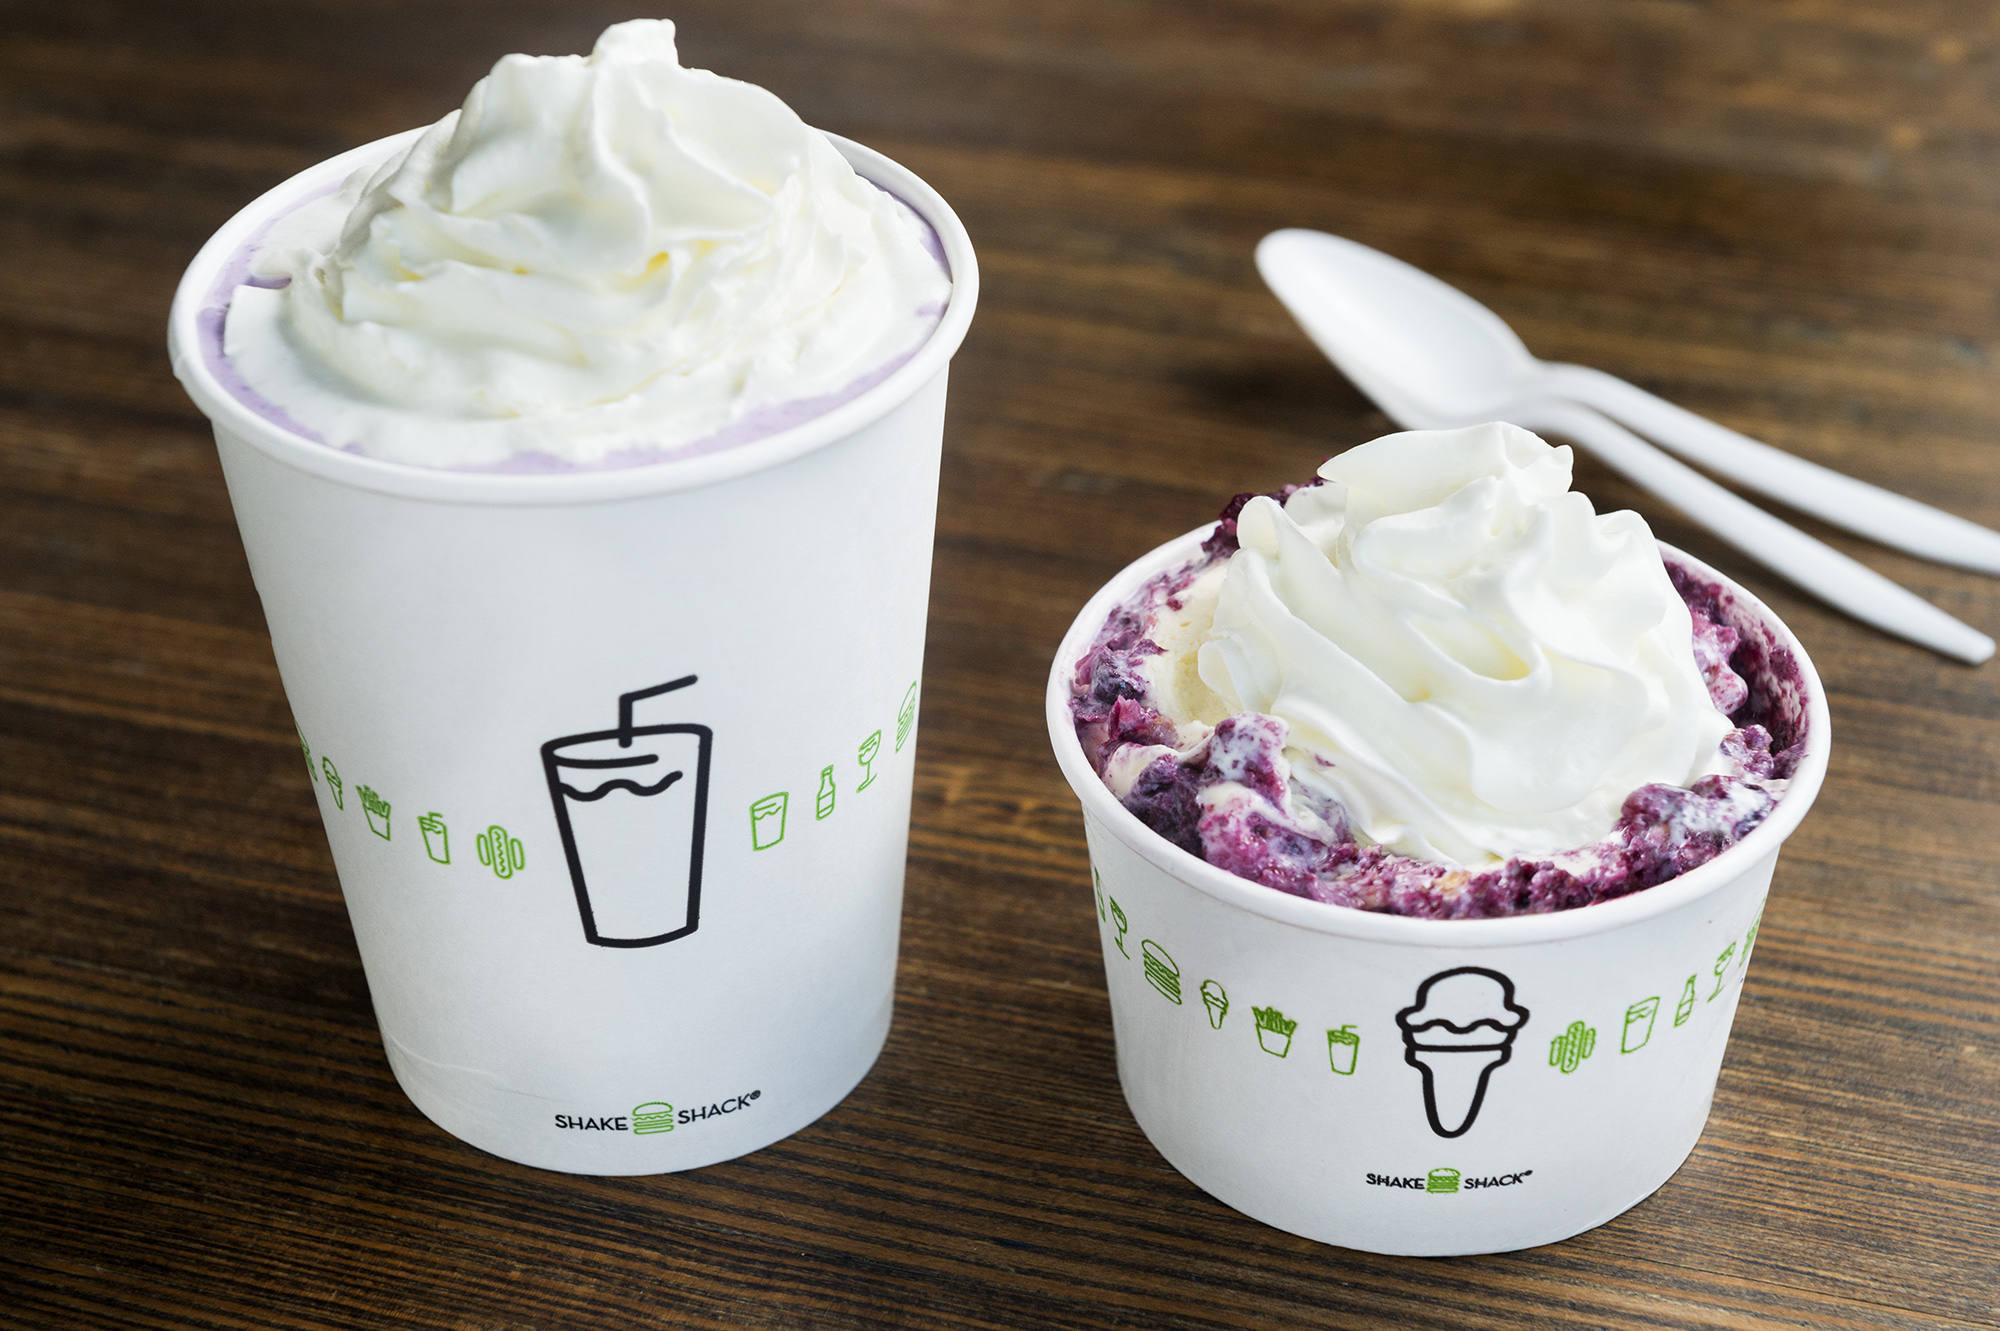 Blueberry Pie Oh My at Shake Shack